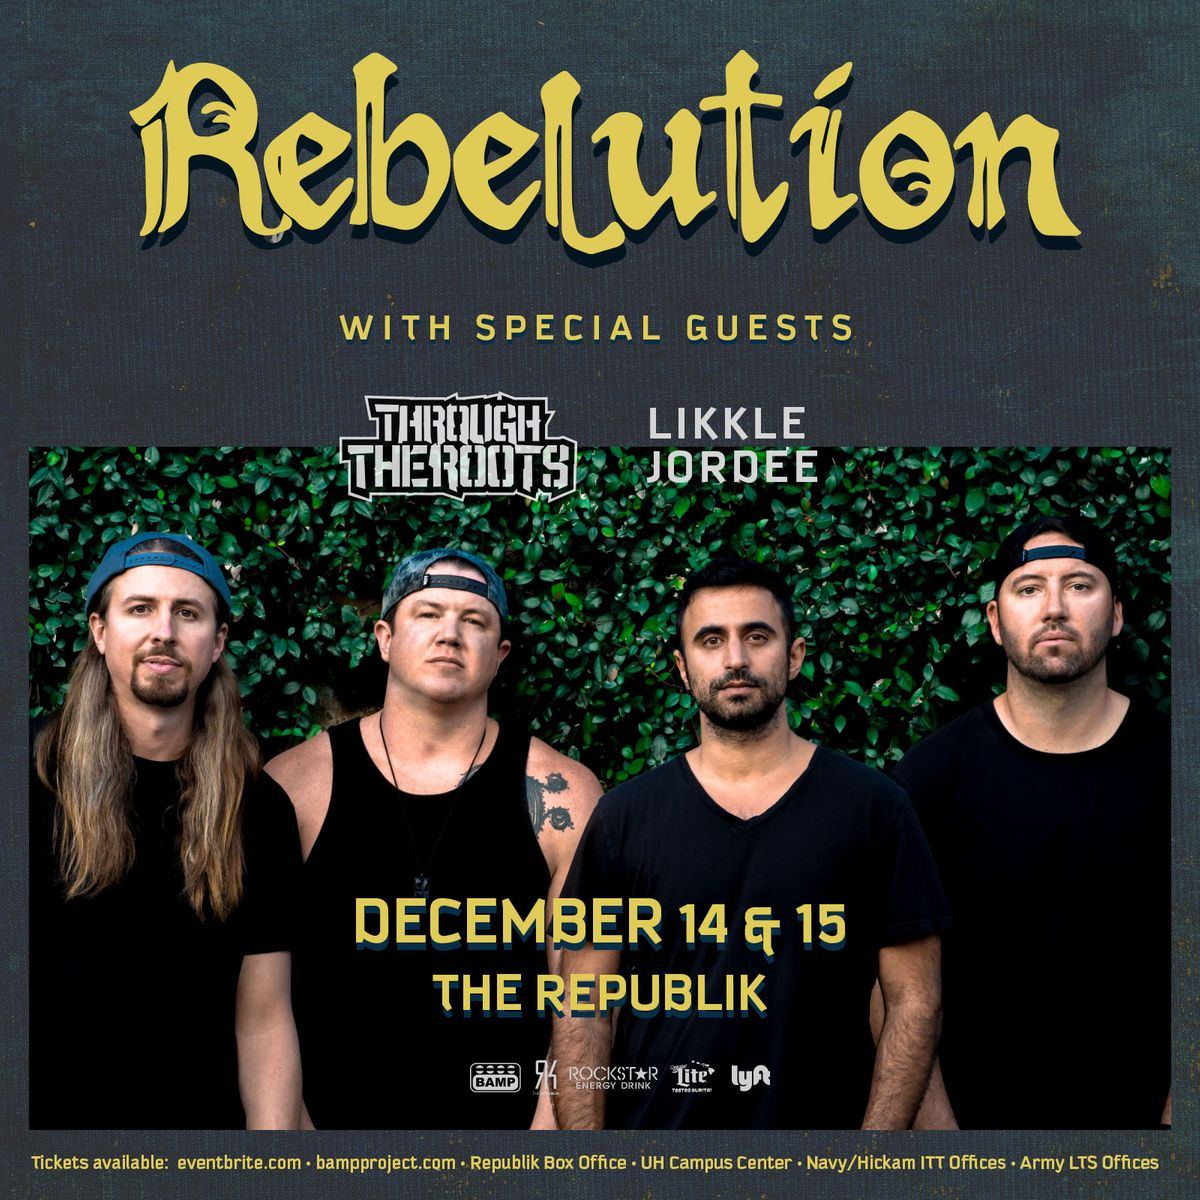 Rebelution_Oahu_ig_1600x1600.jpg